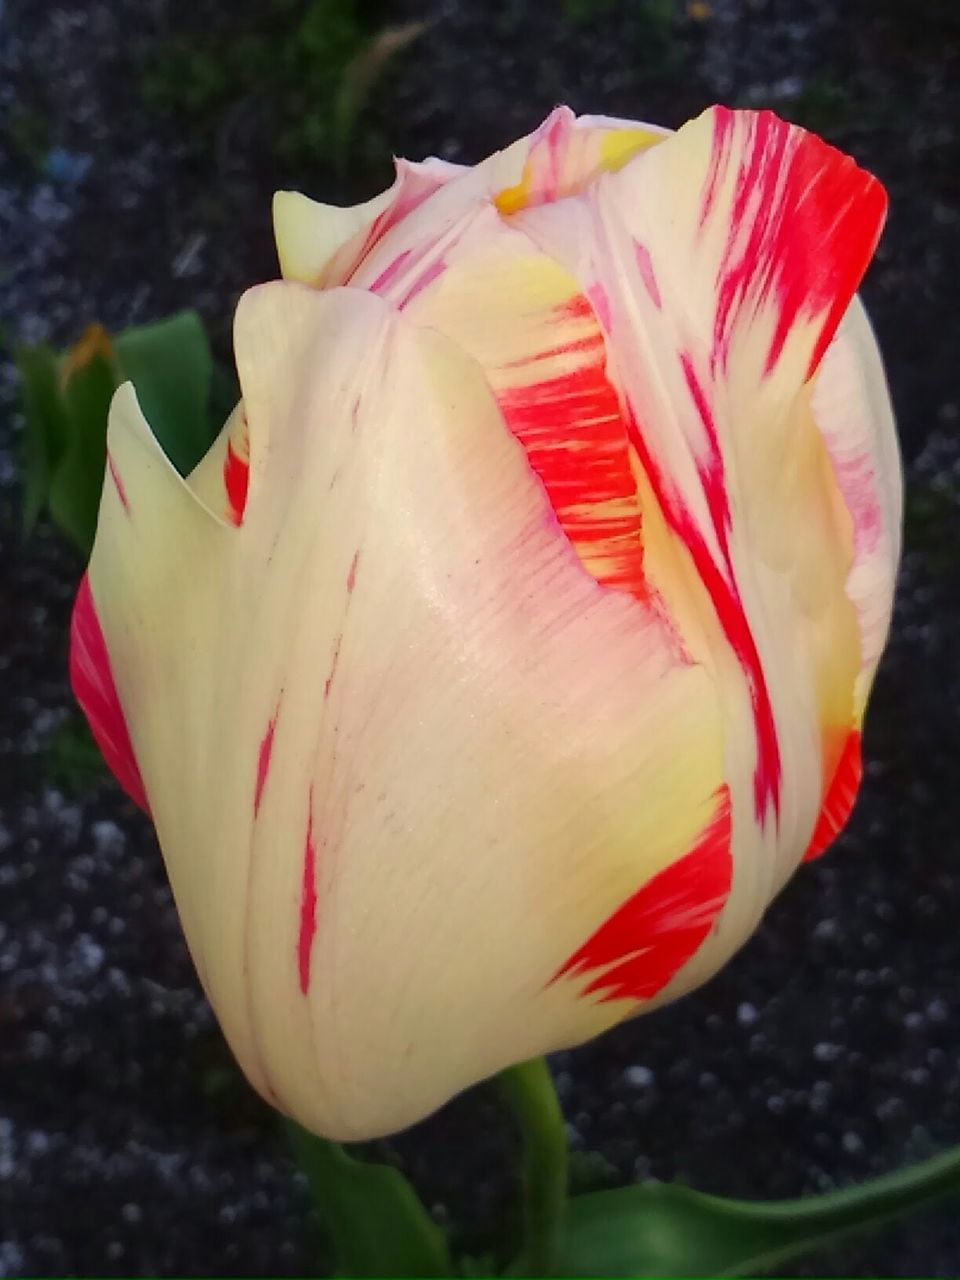 flower, petal, beauty in nature, nature, fragility, flower head, growth, freshness, plant, blooming, no people, close-up, outdoors, red, tulip, day